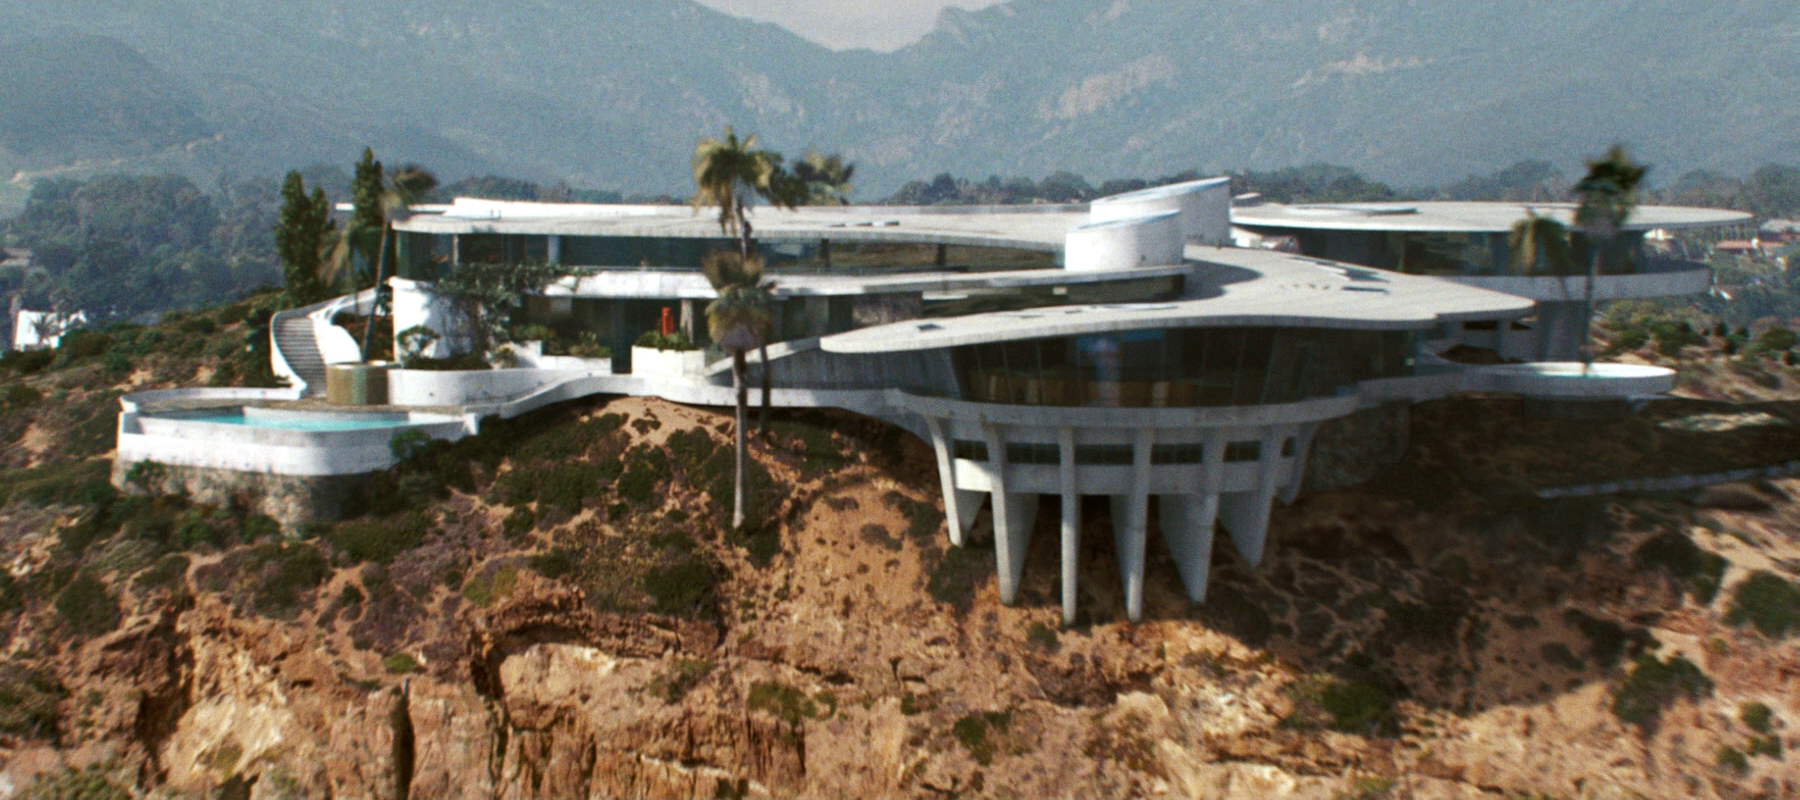 Tony Stark S House Floor Plans Home Design And Style